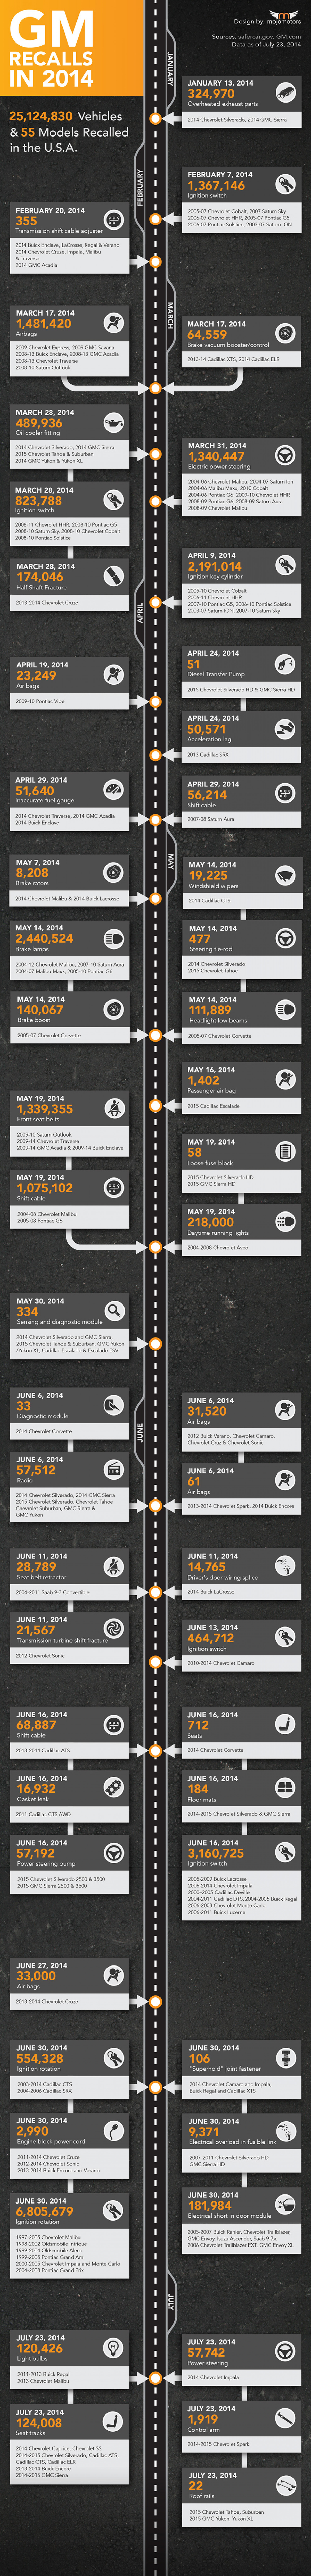 GM Recalls in 2014 Infographic